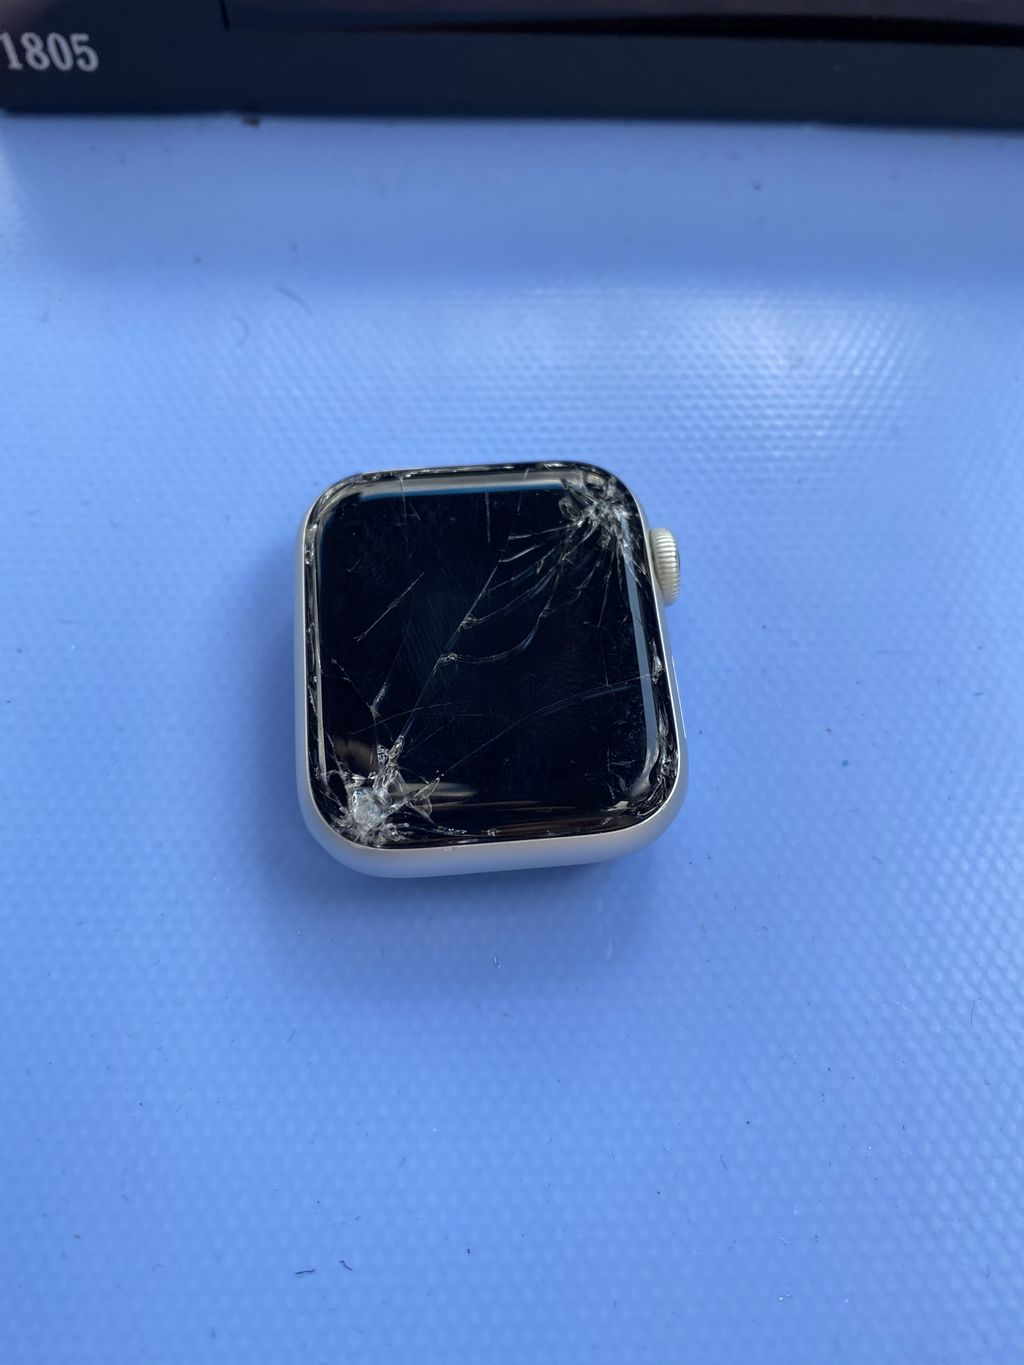 Apple Watch Series 4 Screen Replacement